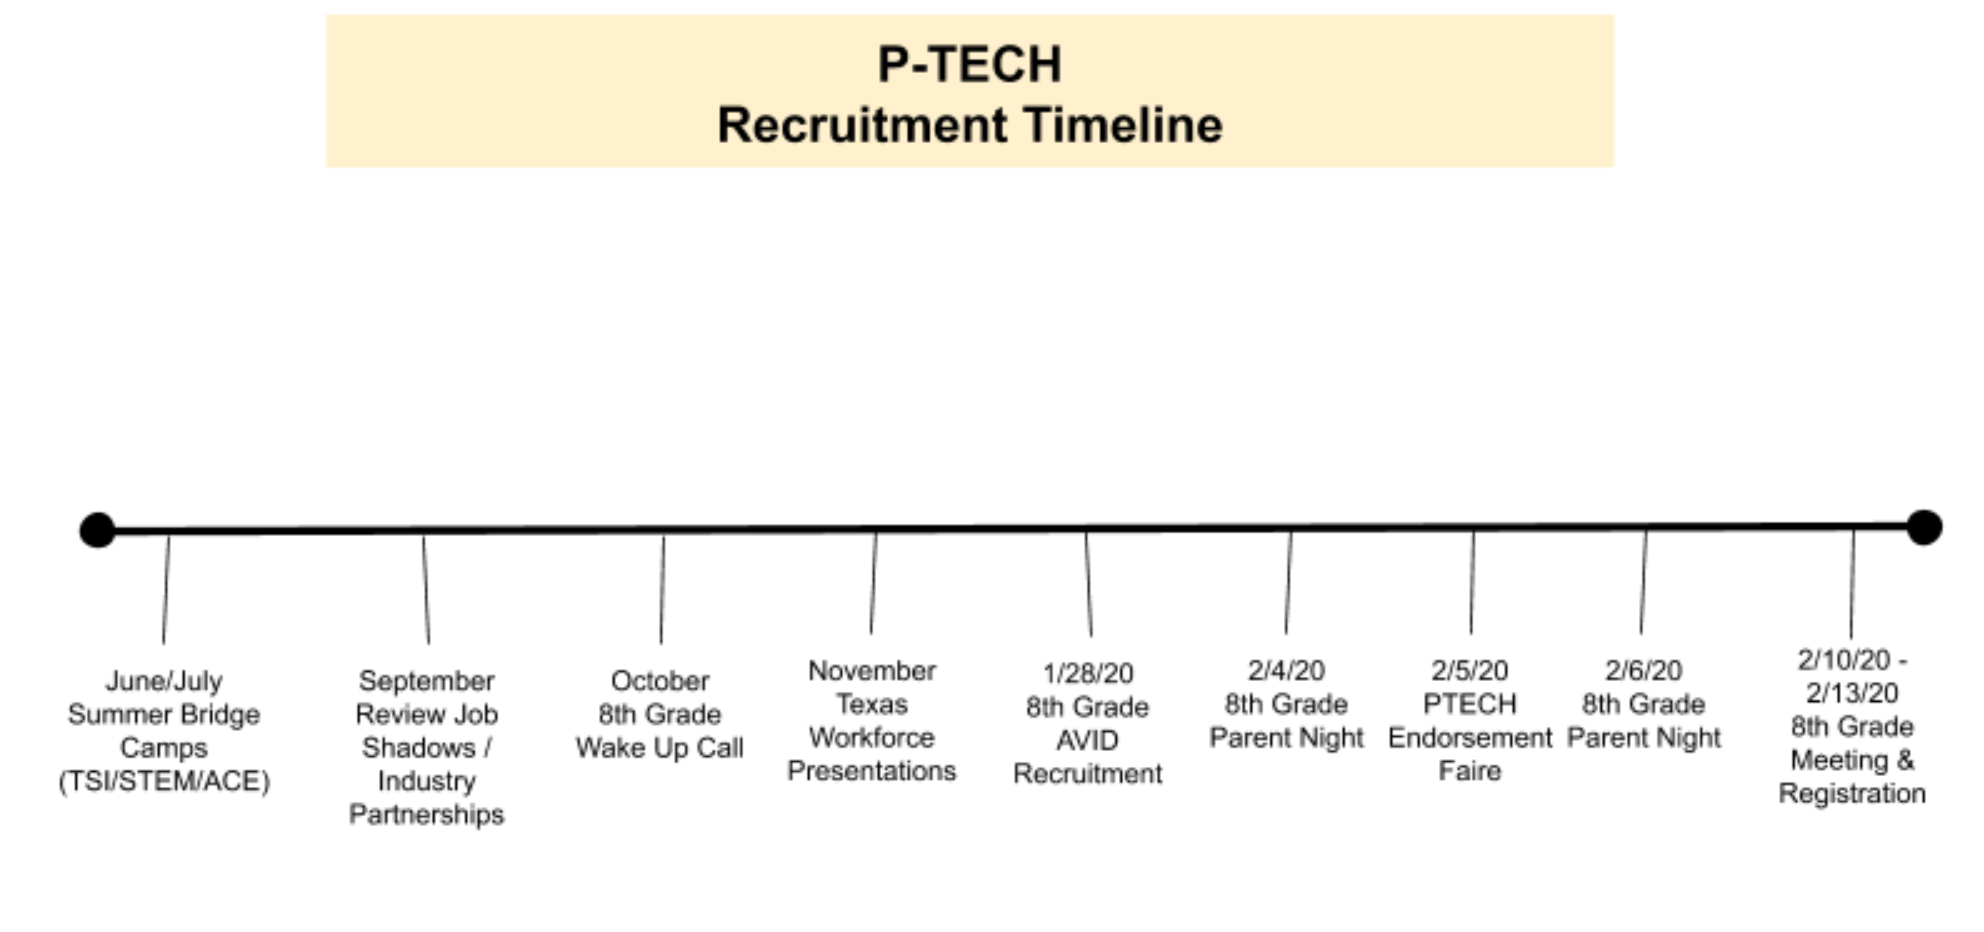 Recruitment Timeline Graphic